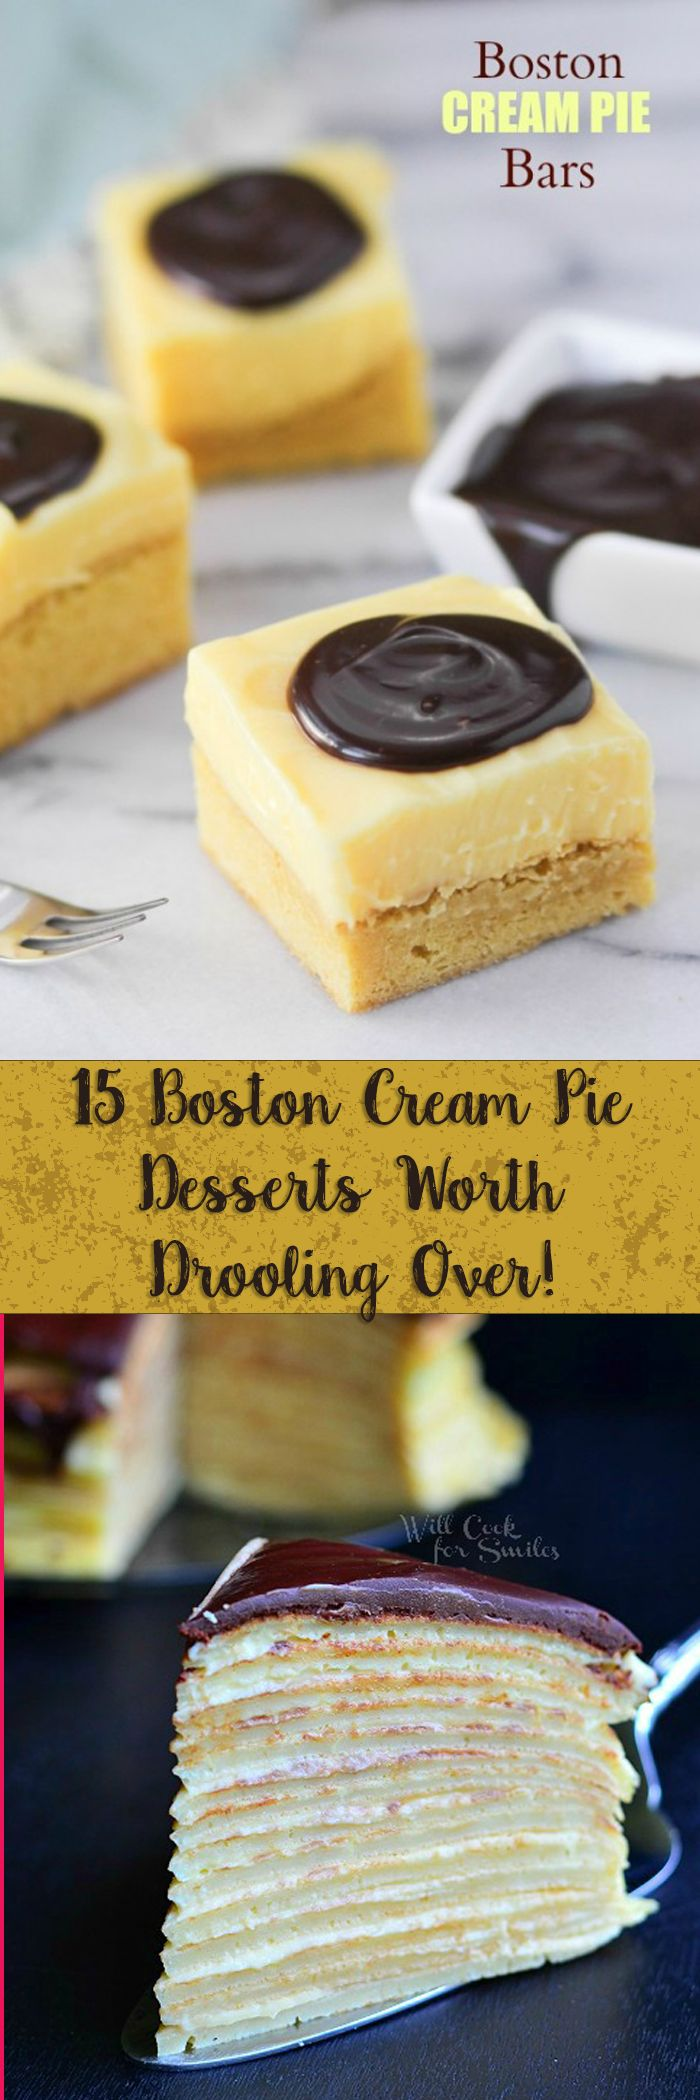 Everything Boston Cream Pie -- from bars, cheesecakes, even a pancake breakfast!